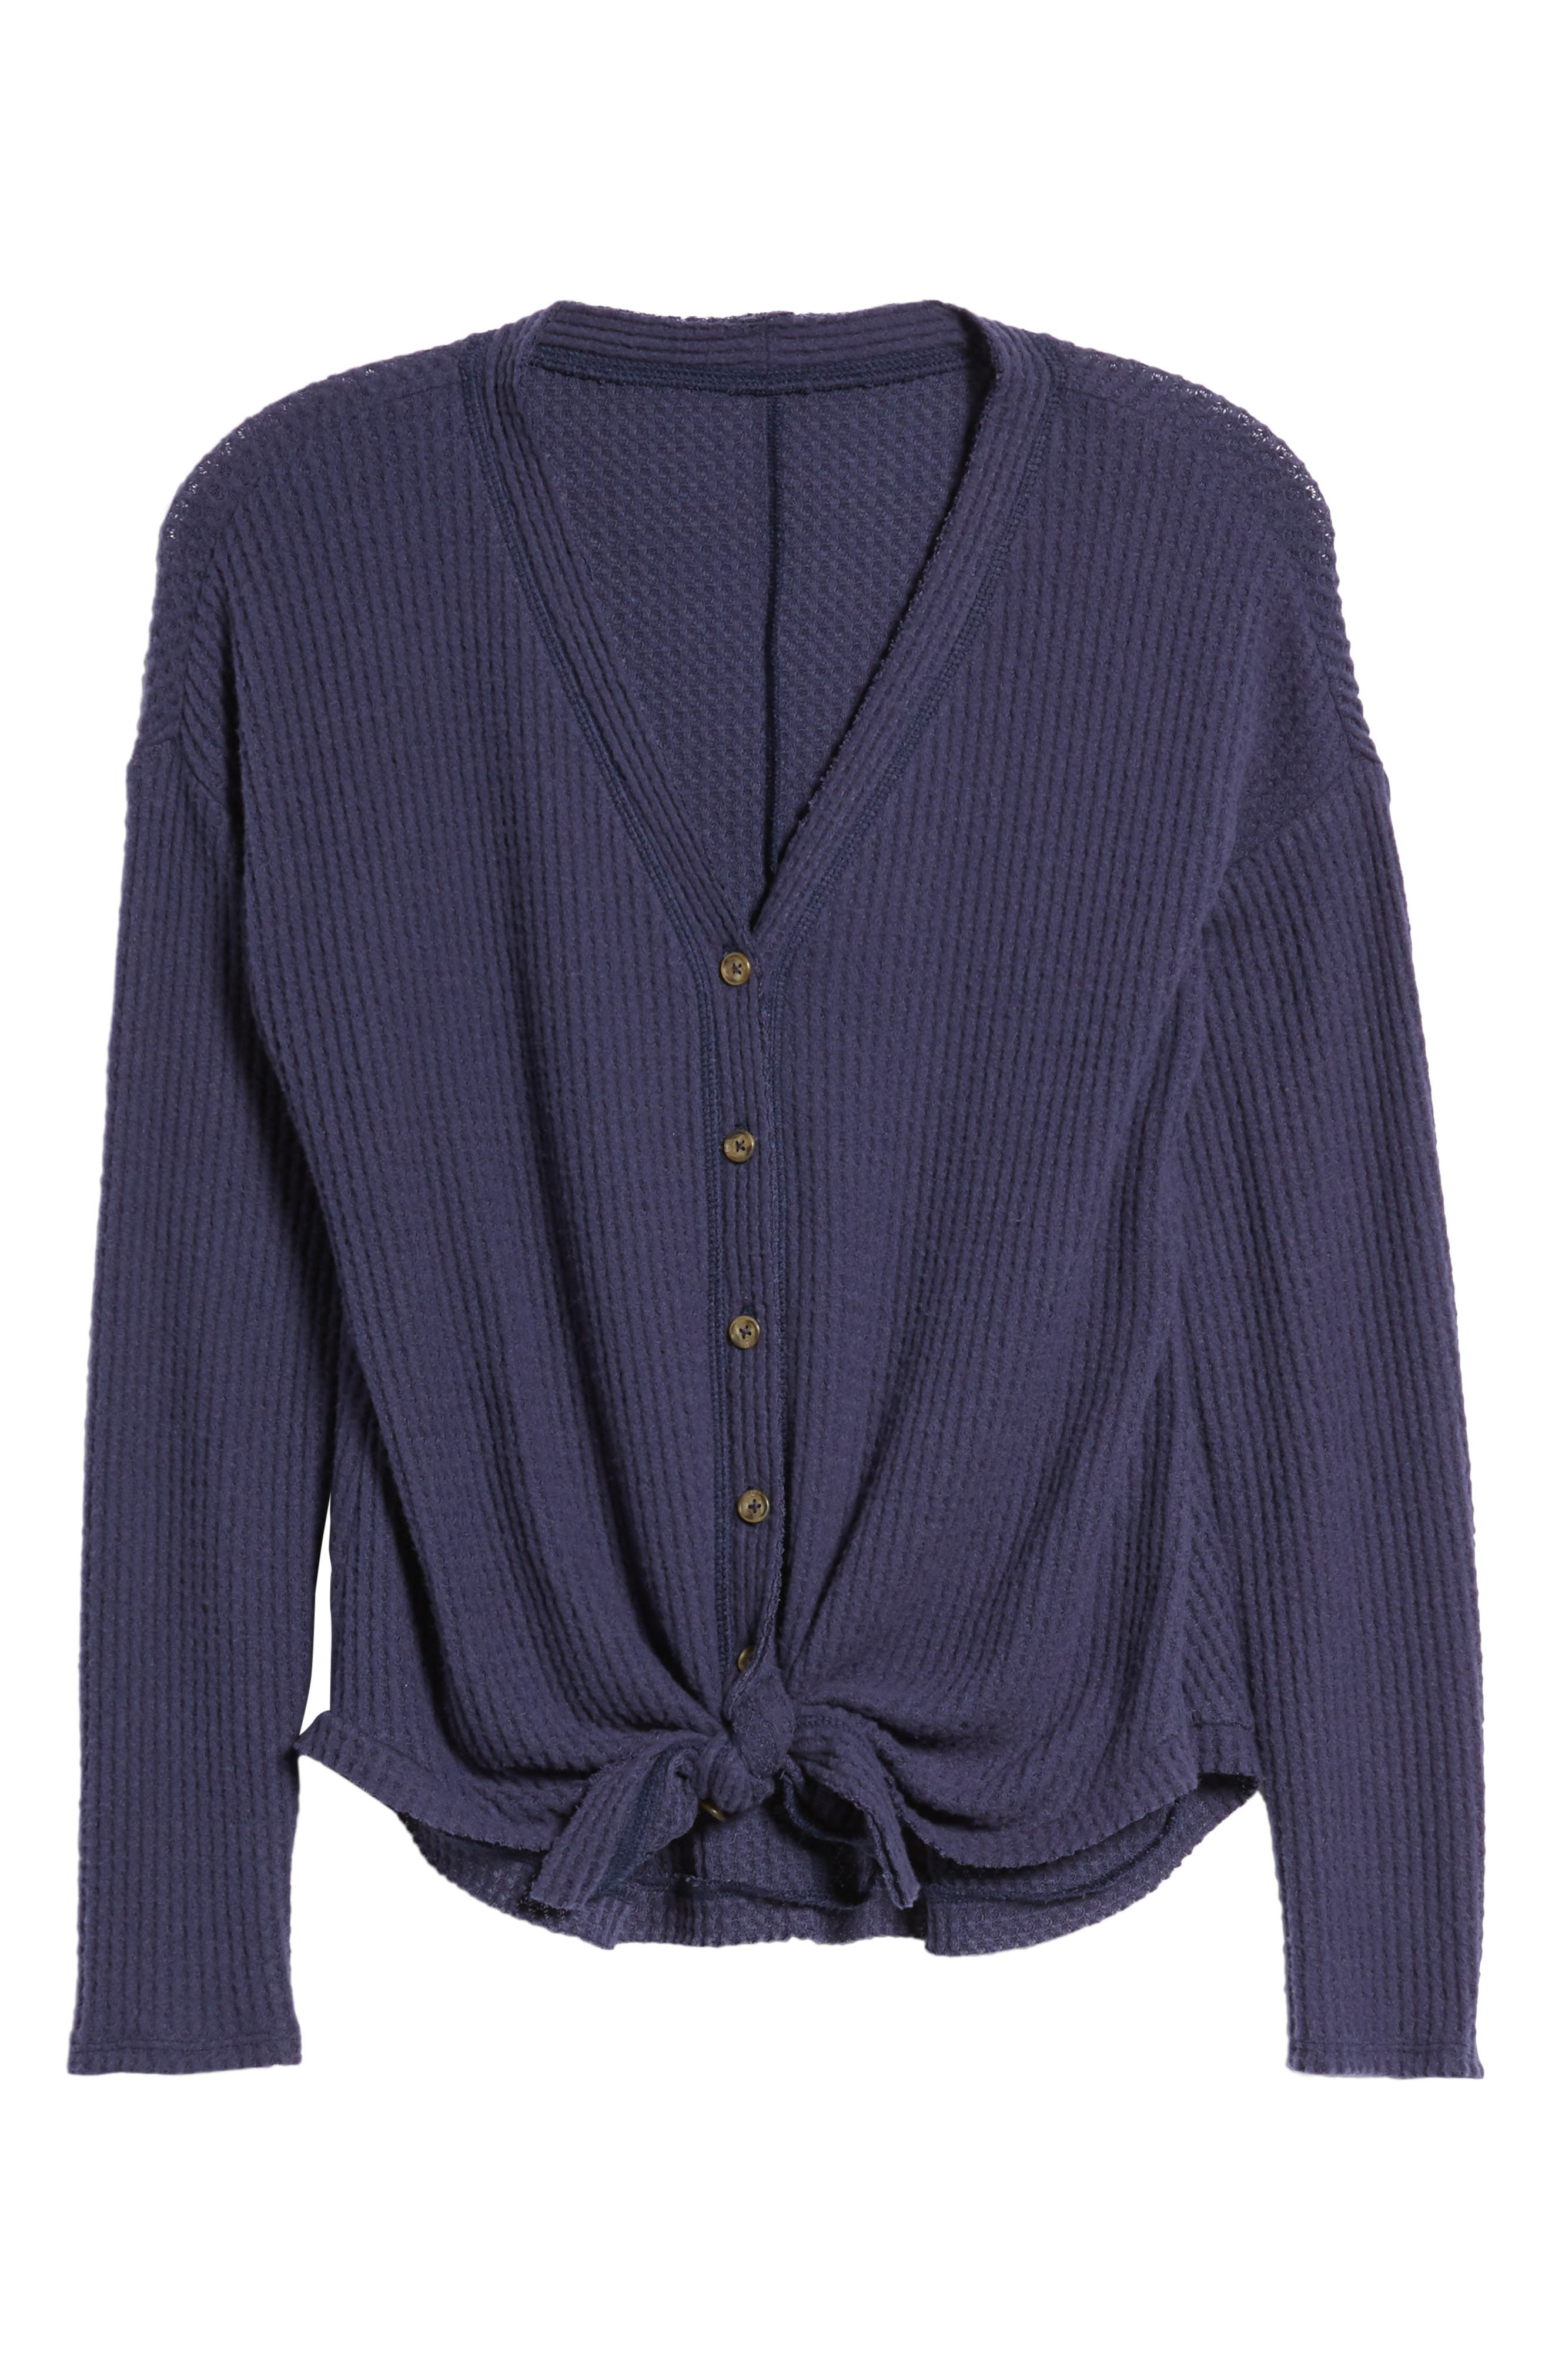 Thermal Button Front Shirt,                             Main thumbnail 1, color,                             Evening Blue